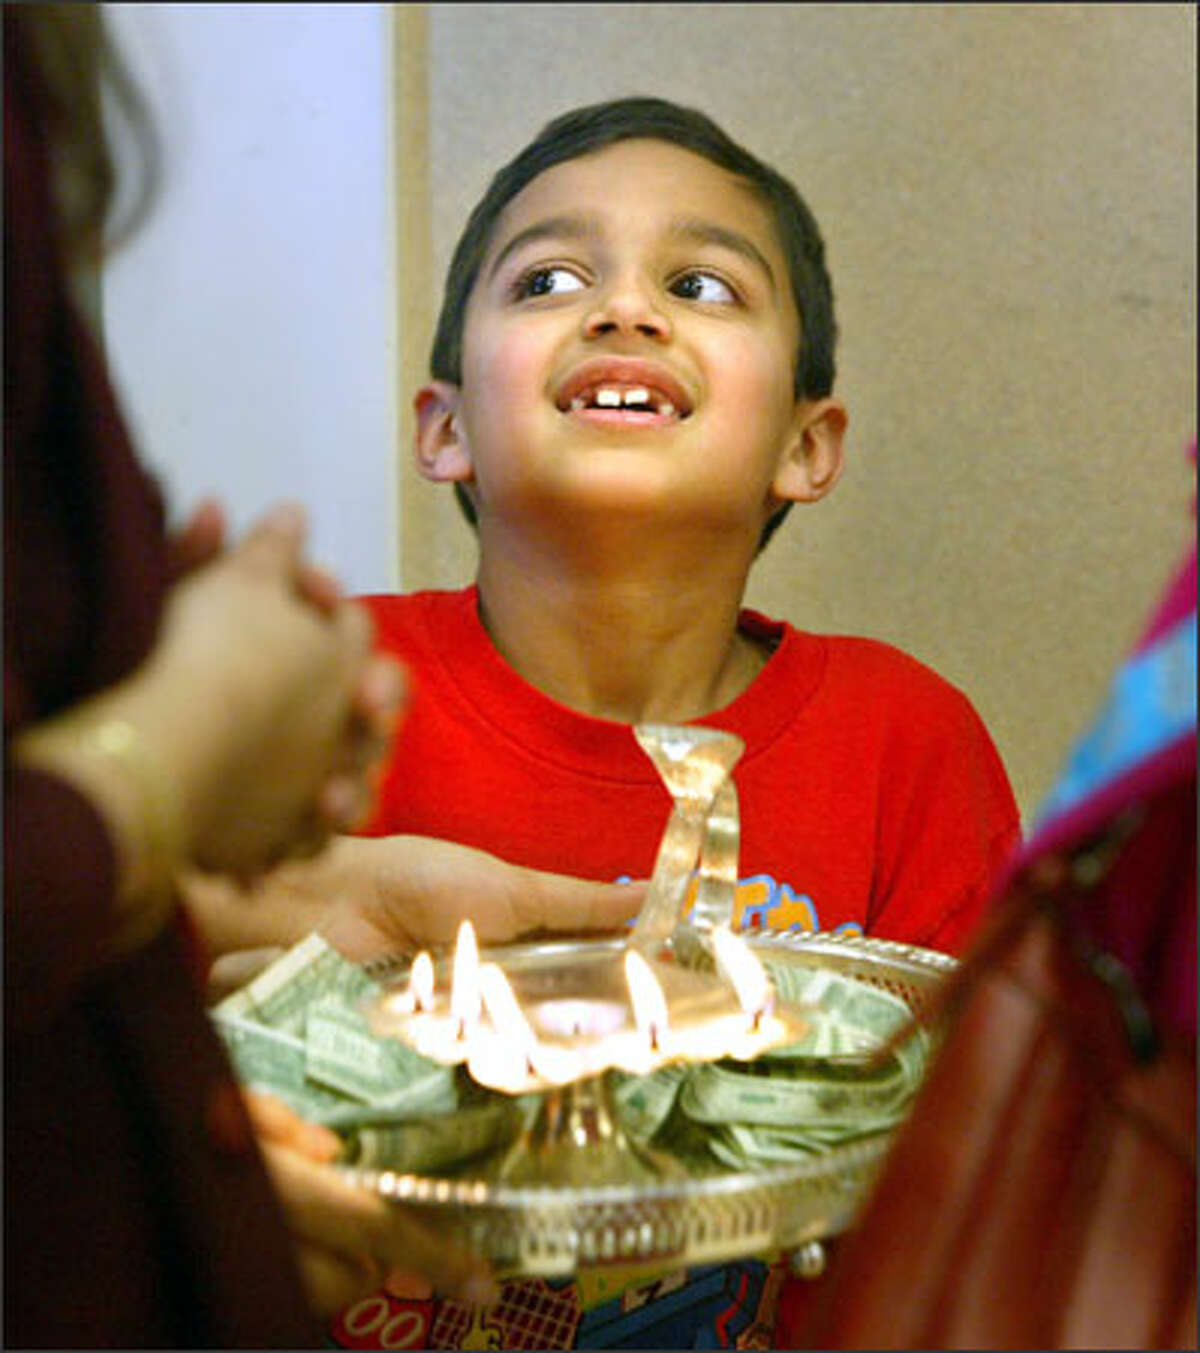 Kunal Sharma, 7, of Bothell holds a